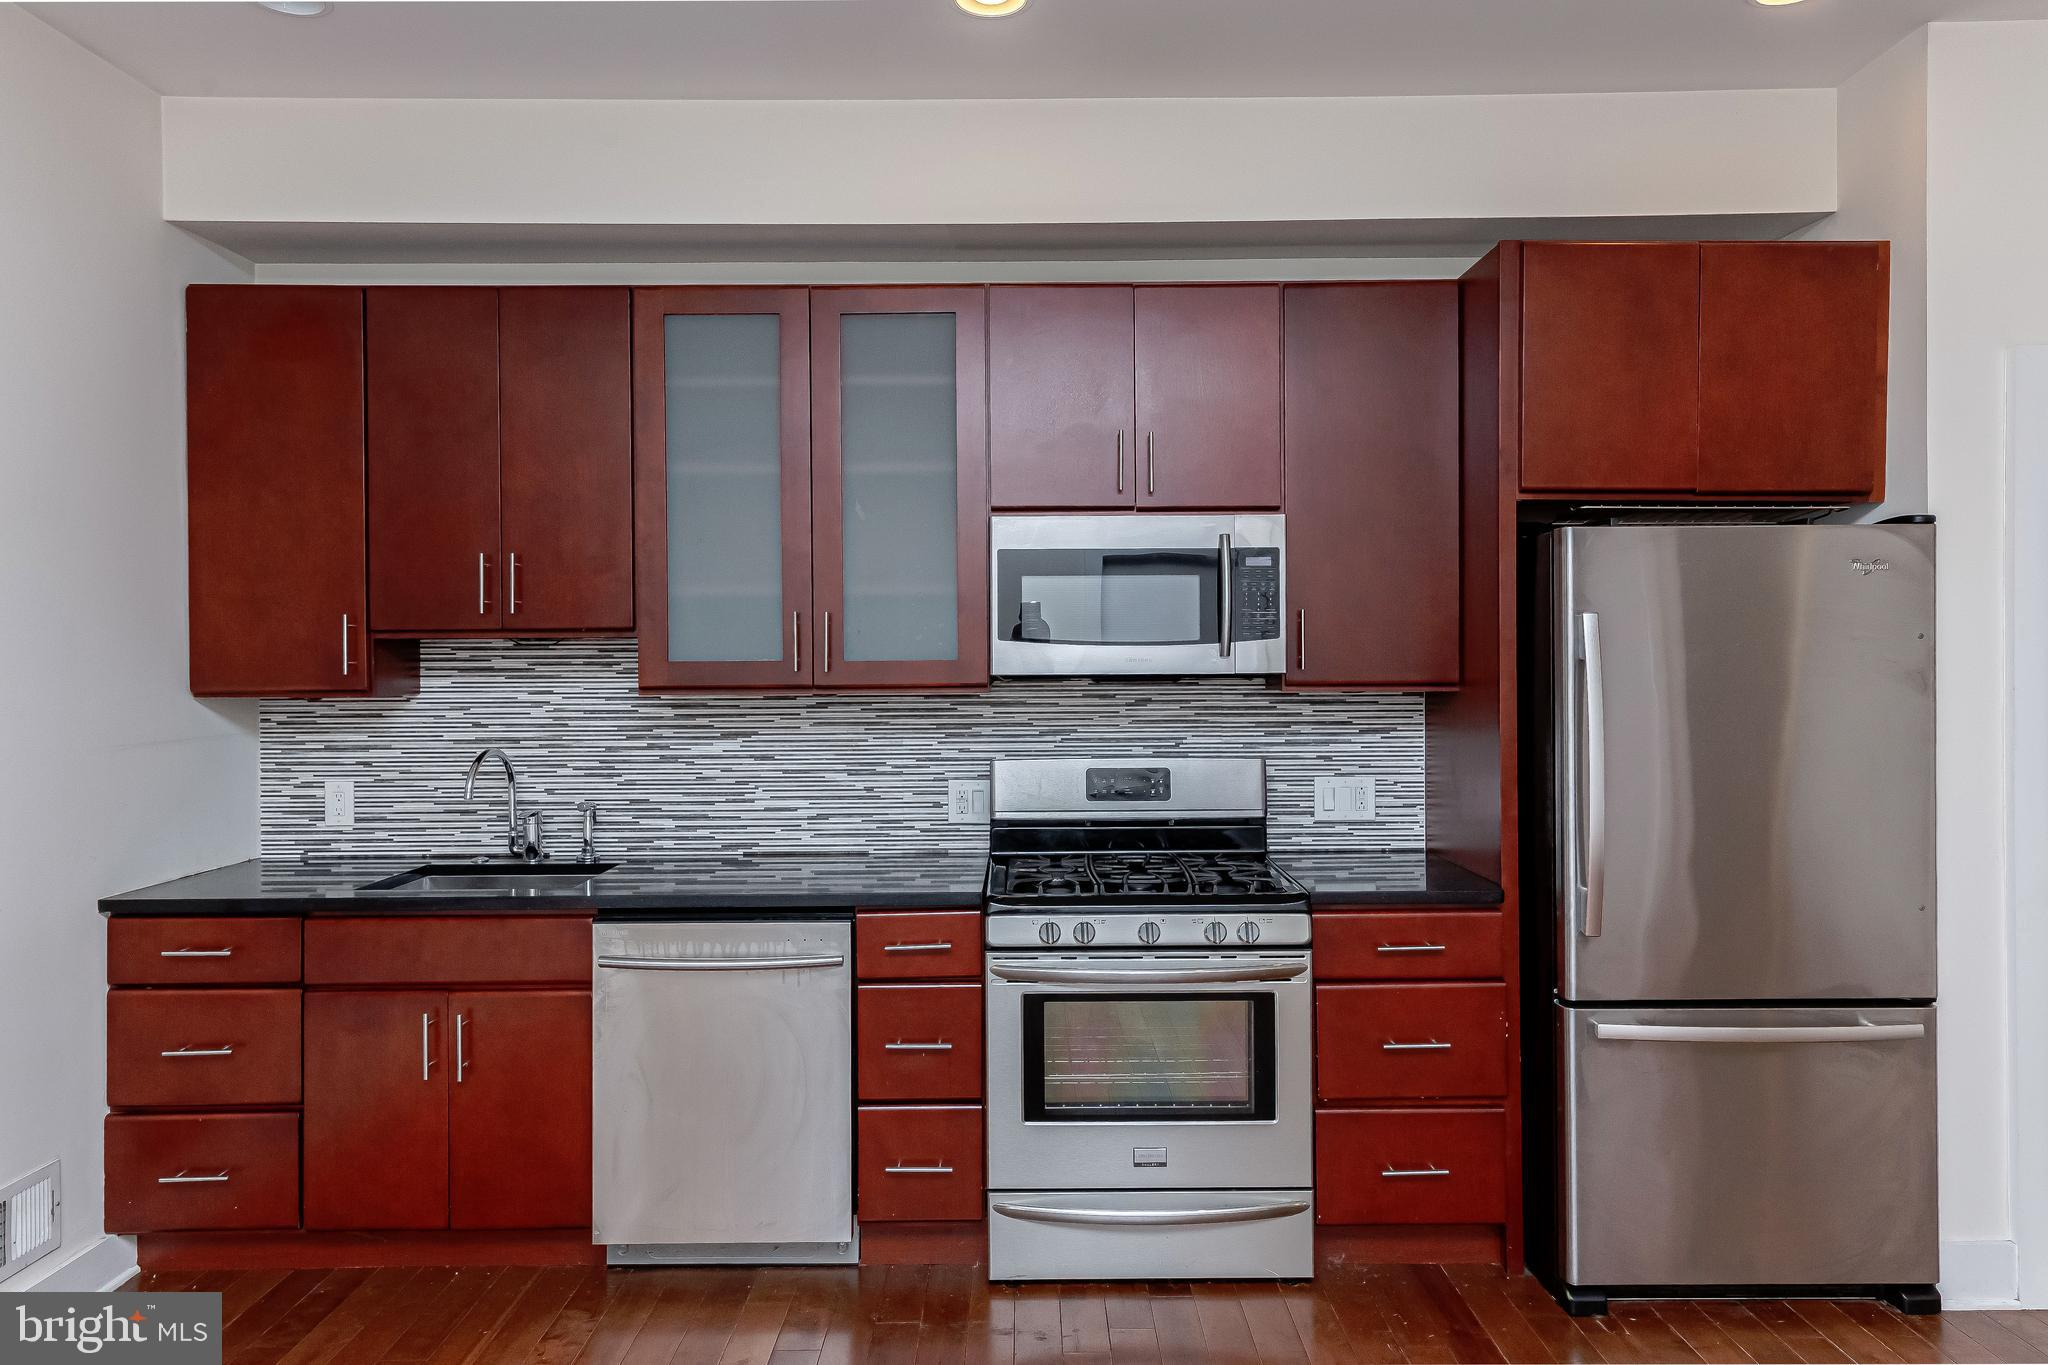 Amazing 3 bedroom , 2 bathroom condominium in the heart of FISHTOWN. This awesome living and dining space is a must see! This residence offers great value. Includes a gated parking space.